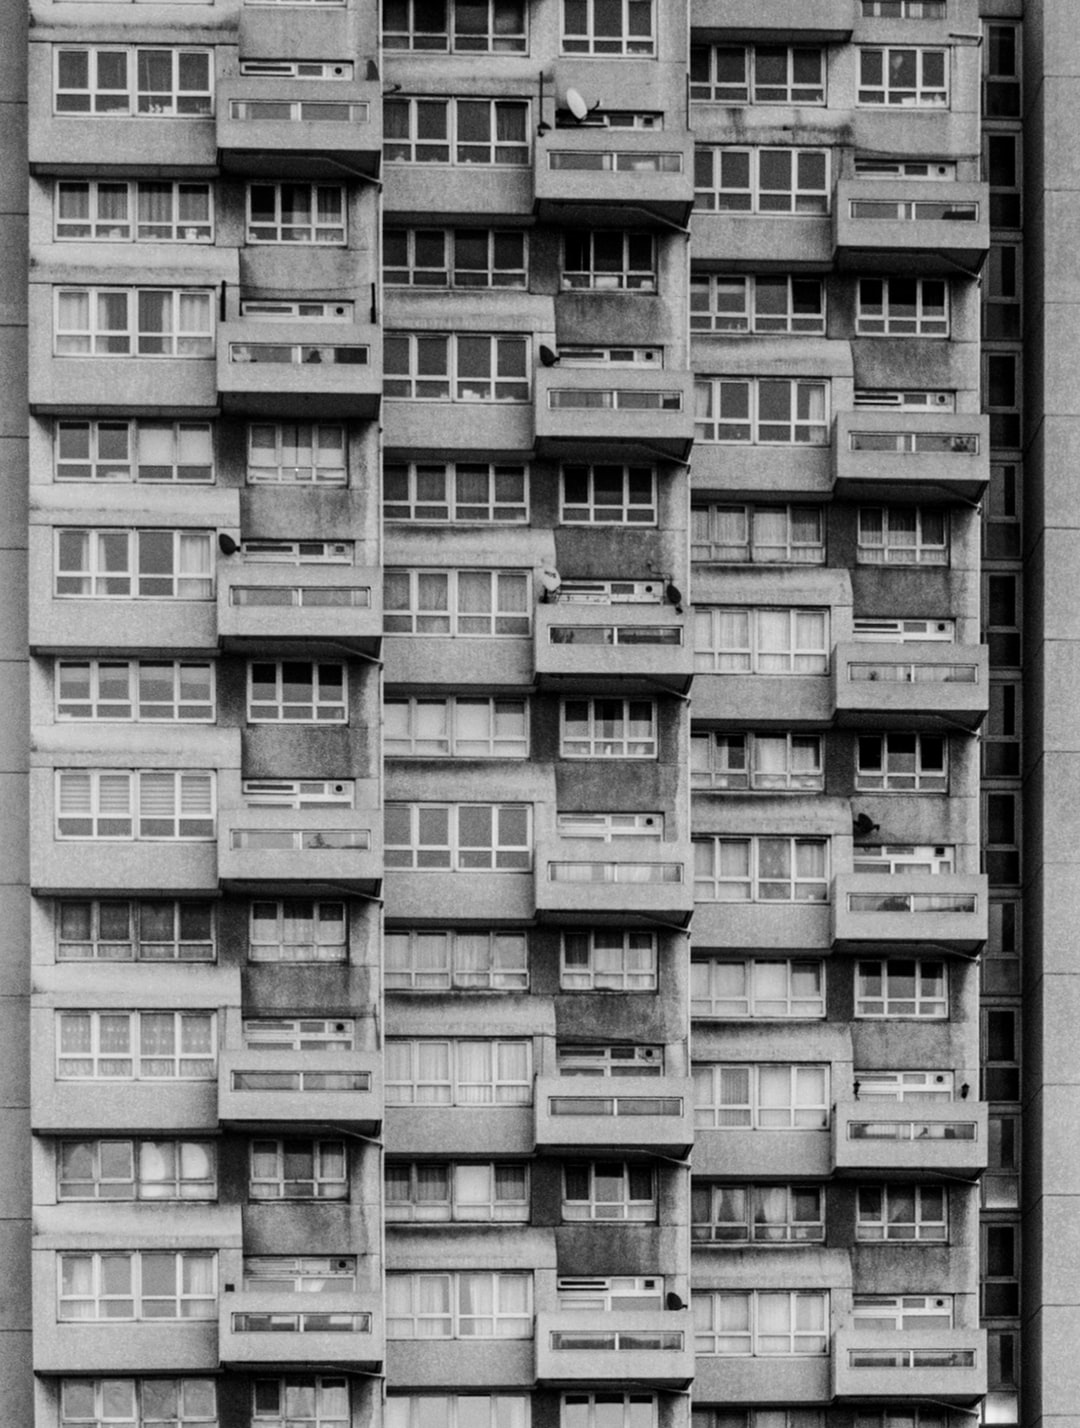 The façade of a tower block in Stockwell, London, UK.